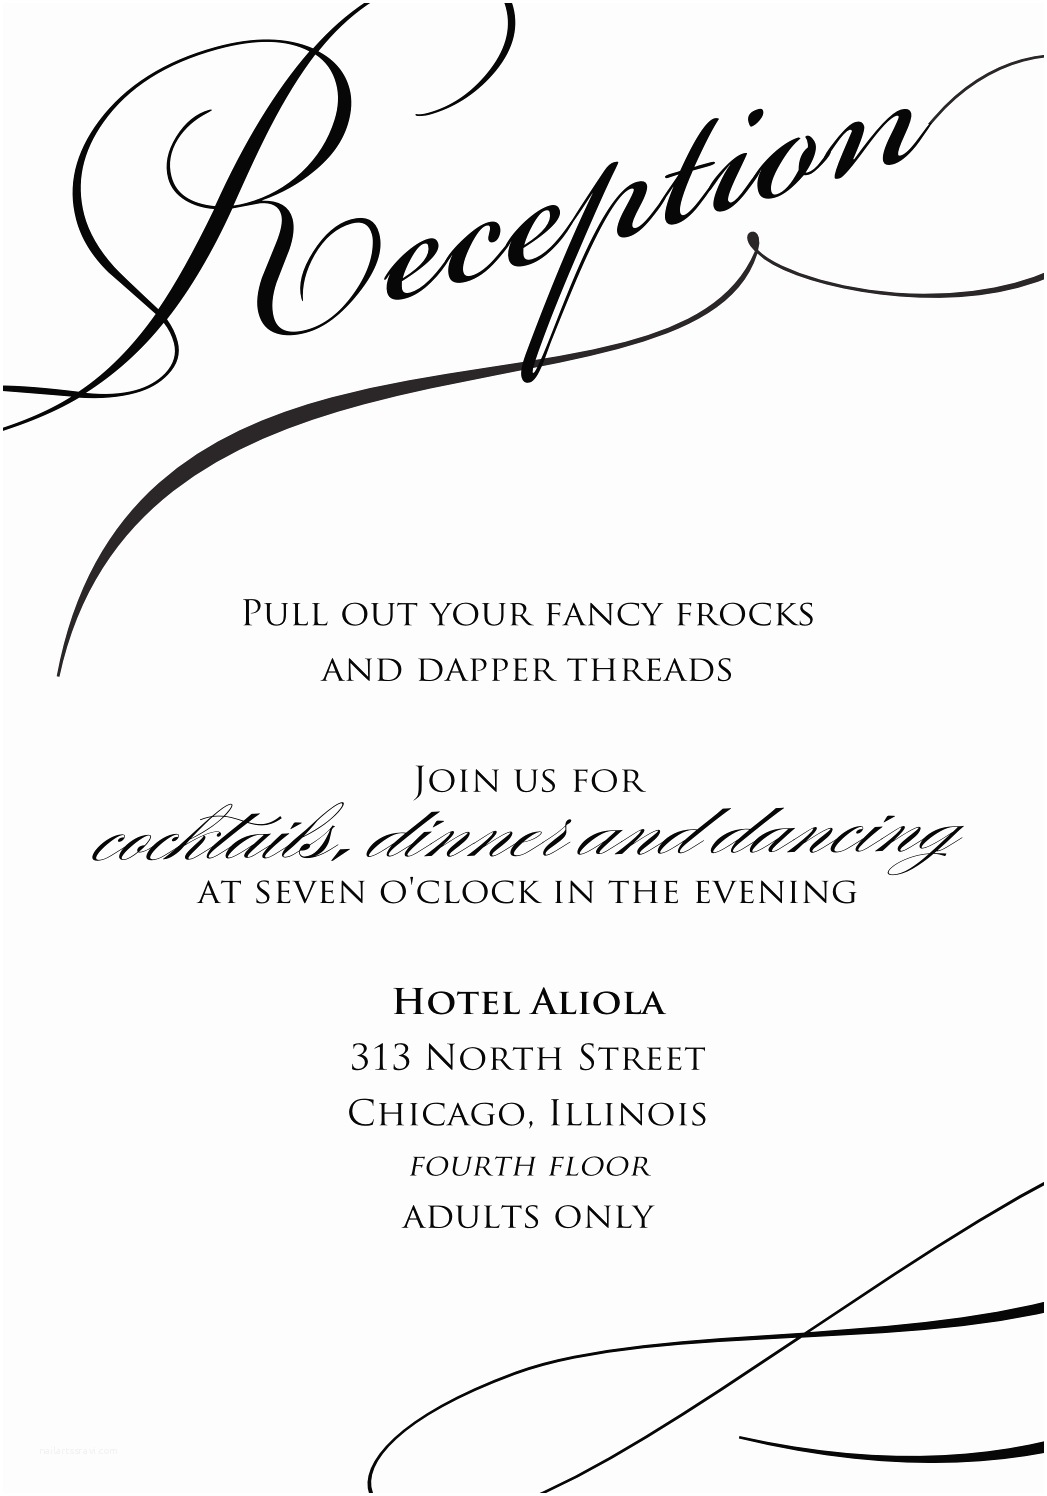 Wedding Reception Invitations Sample Wedding Reception Invitations